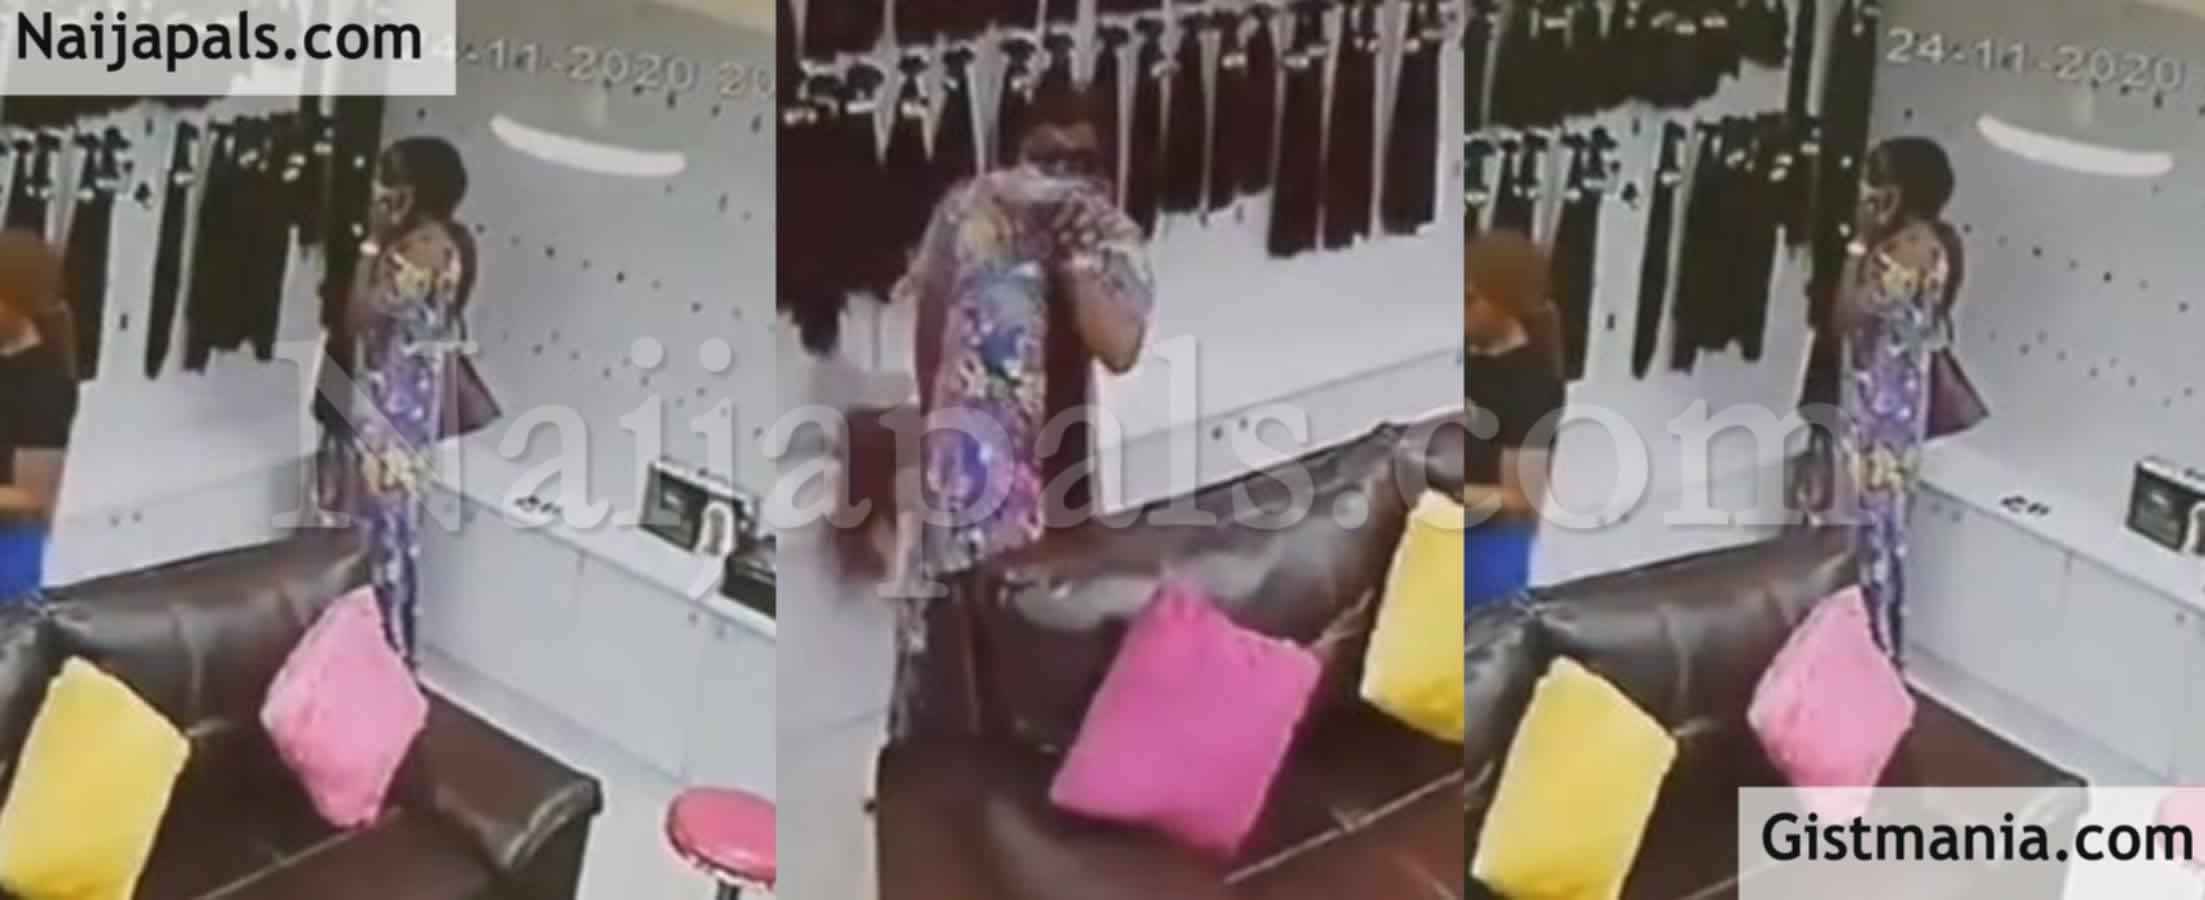 <img alt='.' class='lazyload' data-src='https://img.gistmania.com/emot/video.gif' /> <b>Watch Embarrassing Moment CCTV Camera Captures Lady Stealing Bone Straight Hair In Weave Store</b>